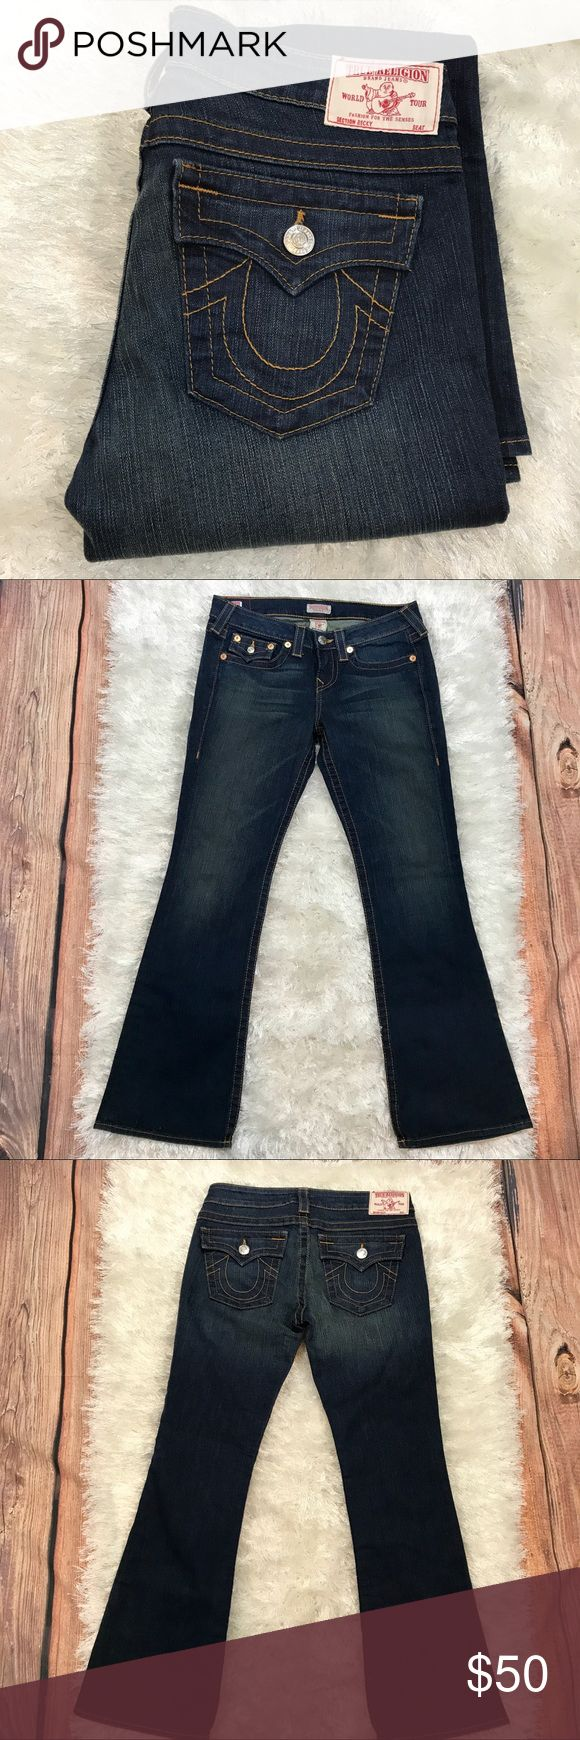 """True Religion Becky Petite Jeans EUC Like New True Religion Becky petite jeans EUC like new! Size 29. Inseam measures approximately 29"""". 94% Cotton, 5% Polyester, and 1% Spandex. Dark wash. Beautiful jeans! True Religion Jeans"""